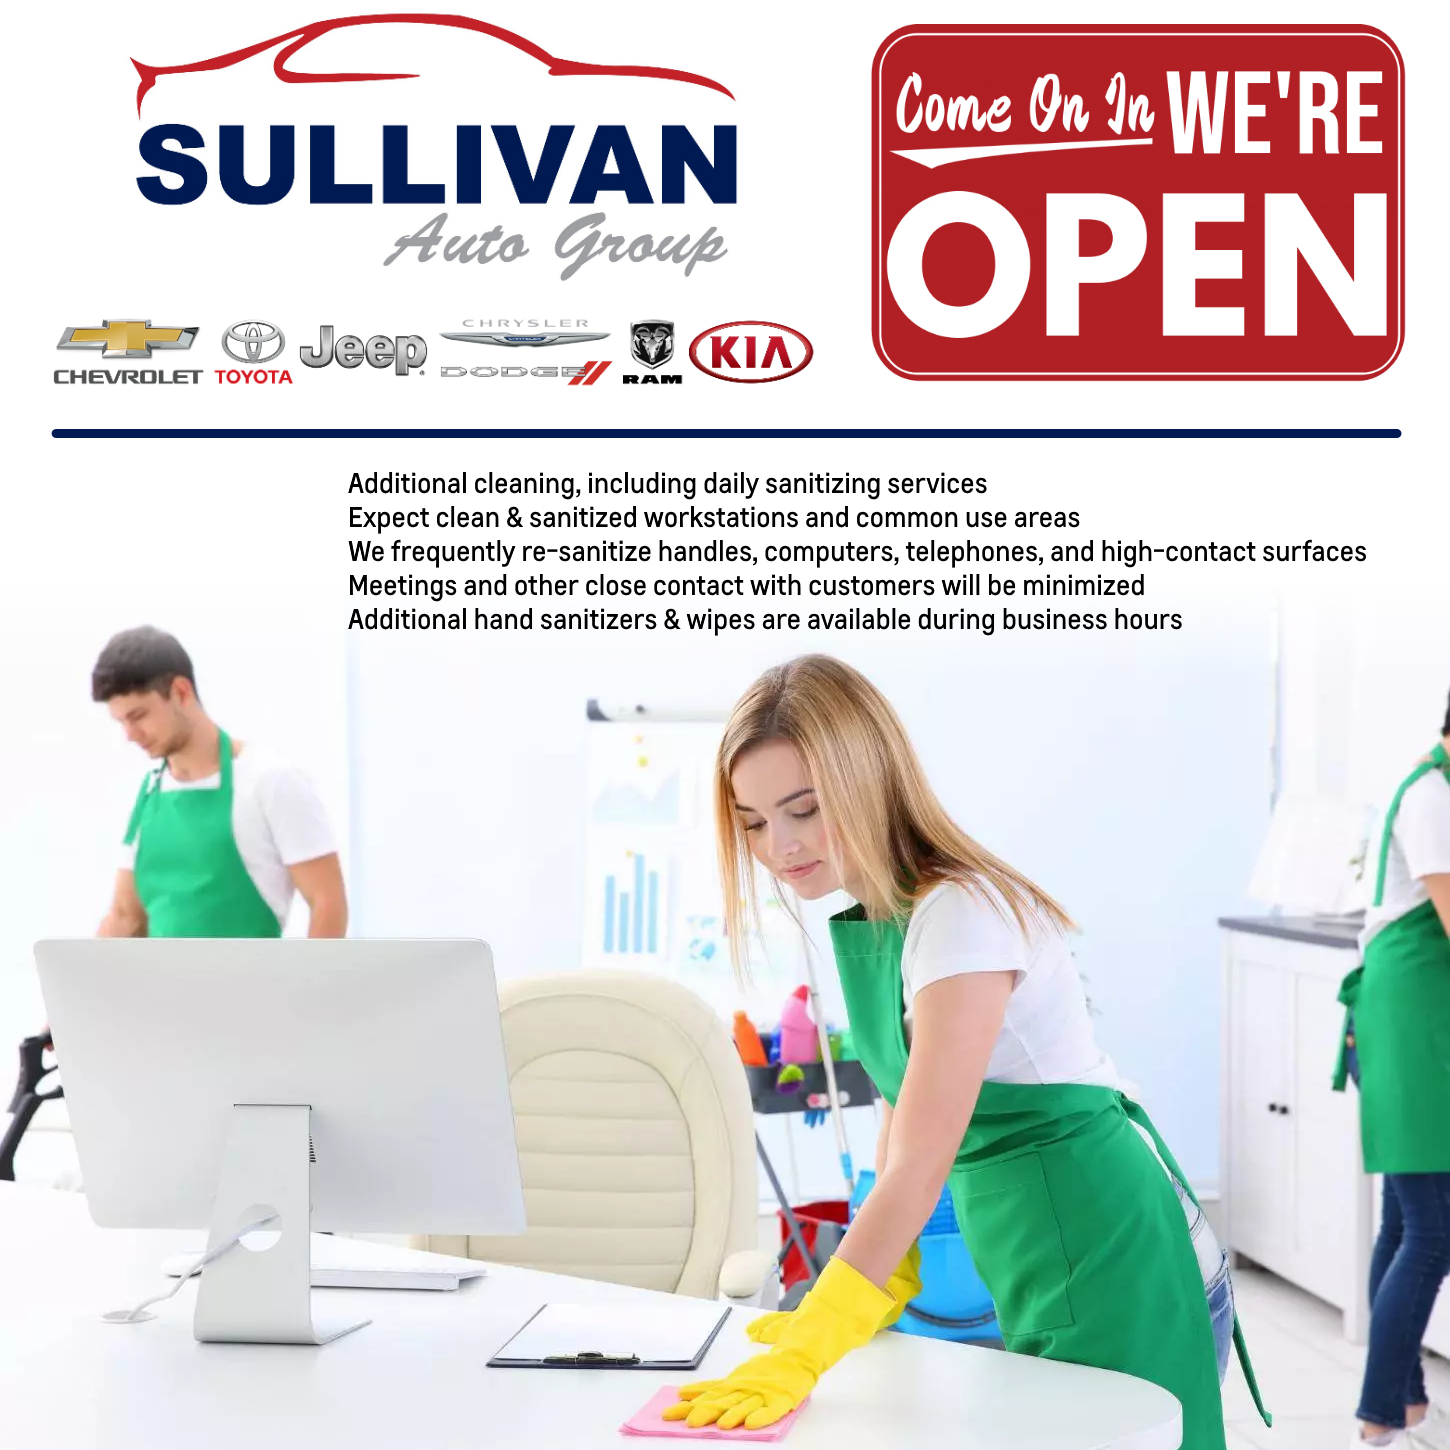 Covid-19 Cleaning at the Sullivan Auto Group